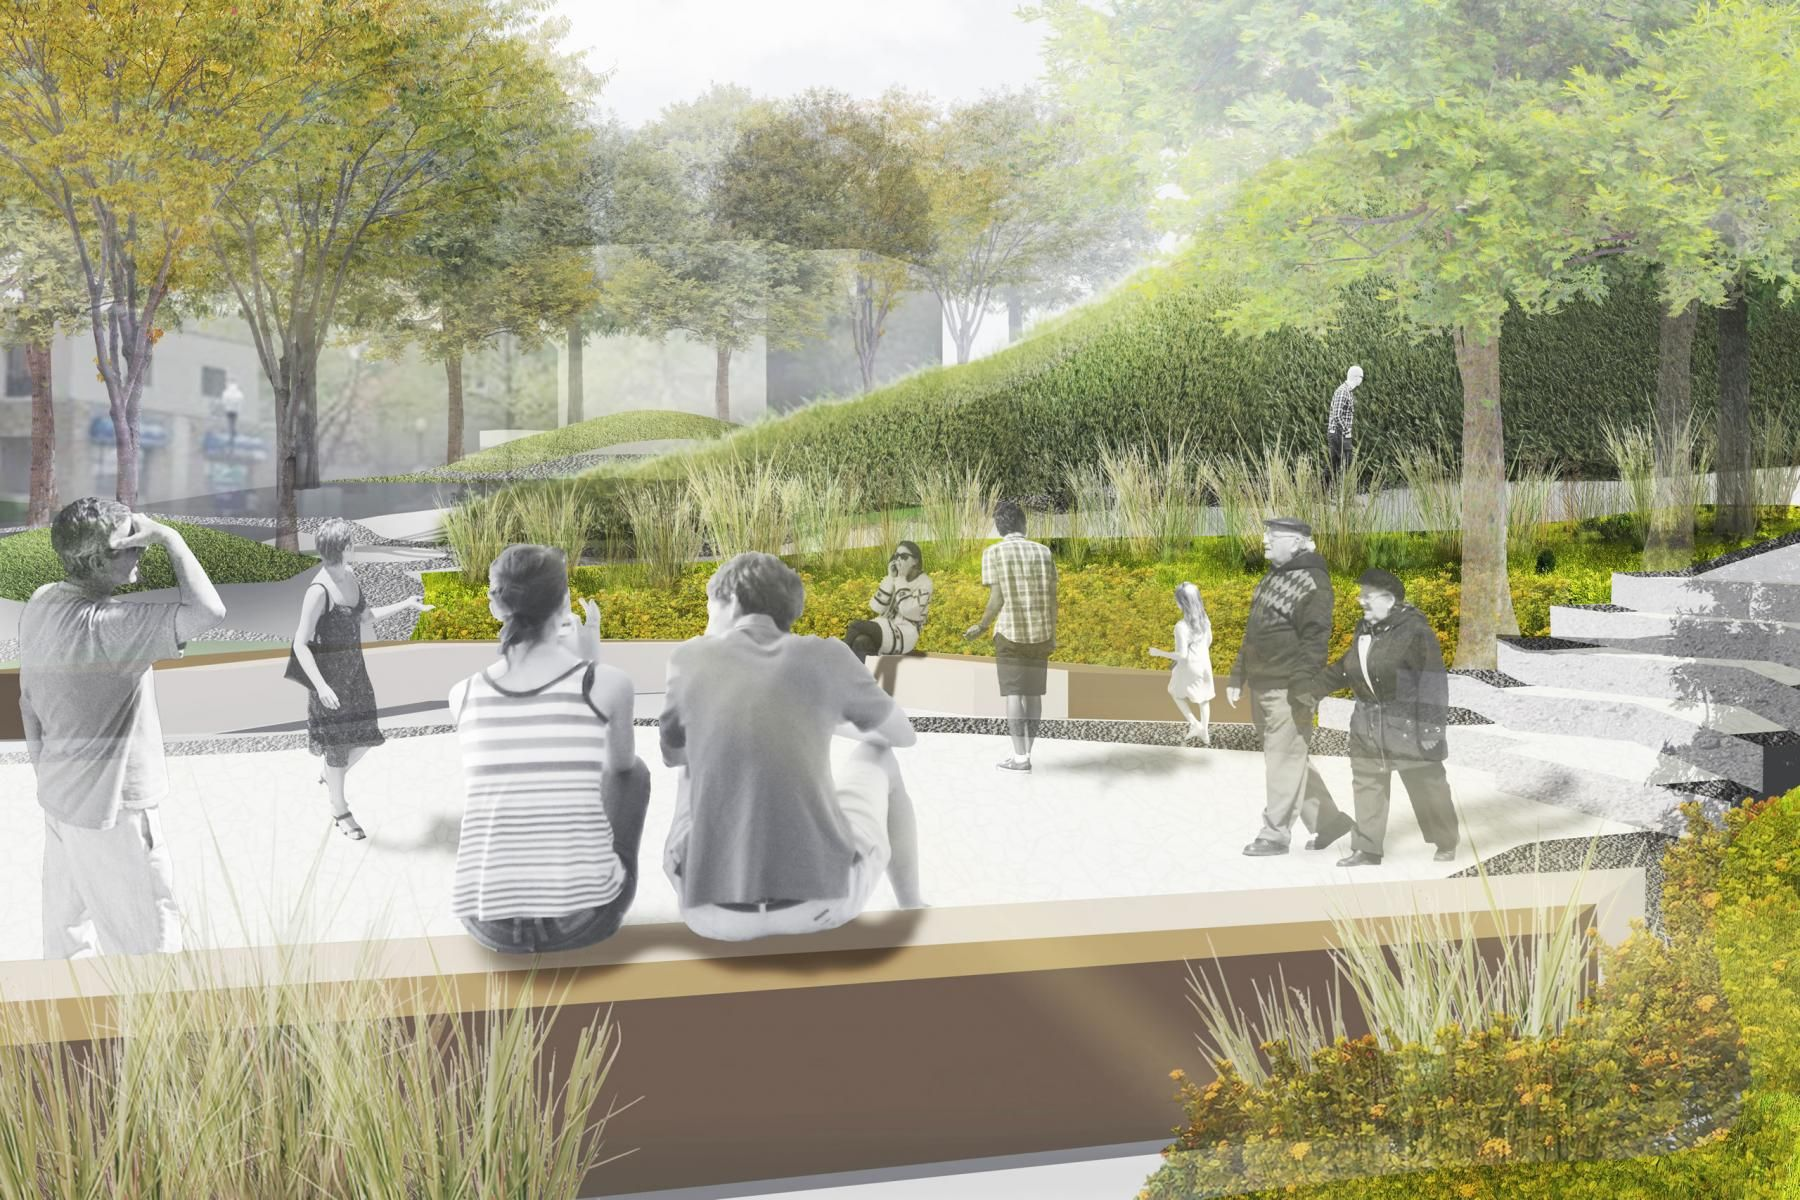 landscape architecture master plan rendering - Google Search ...